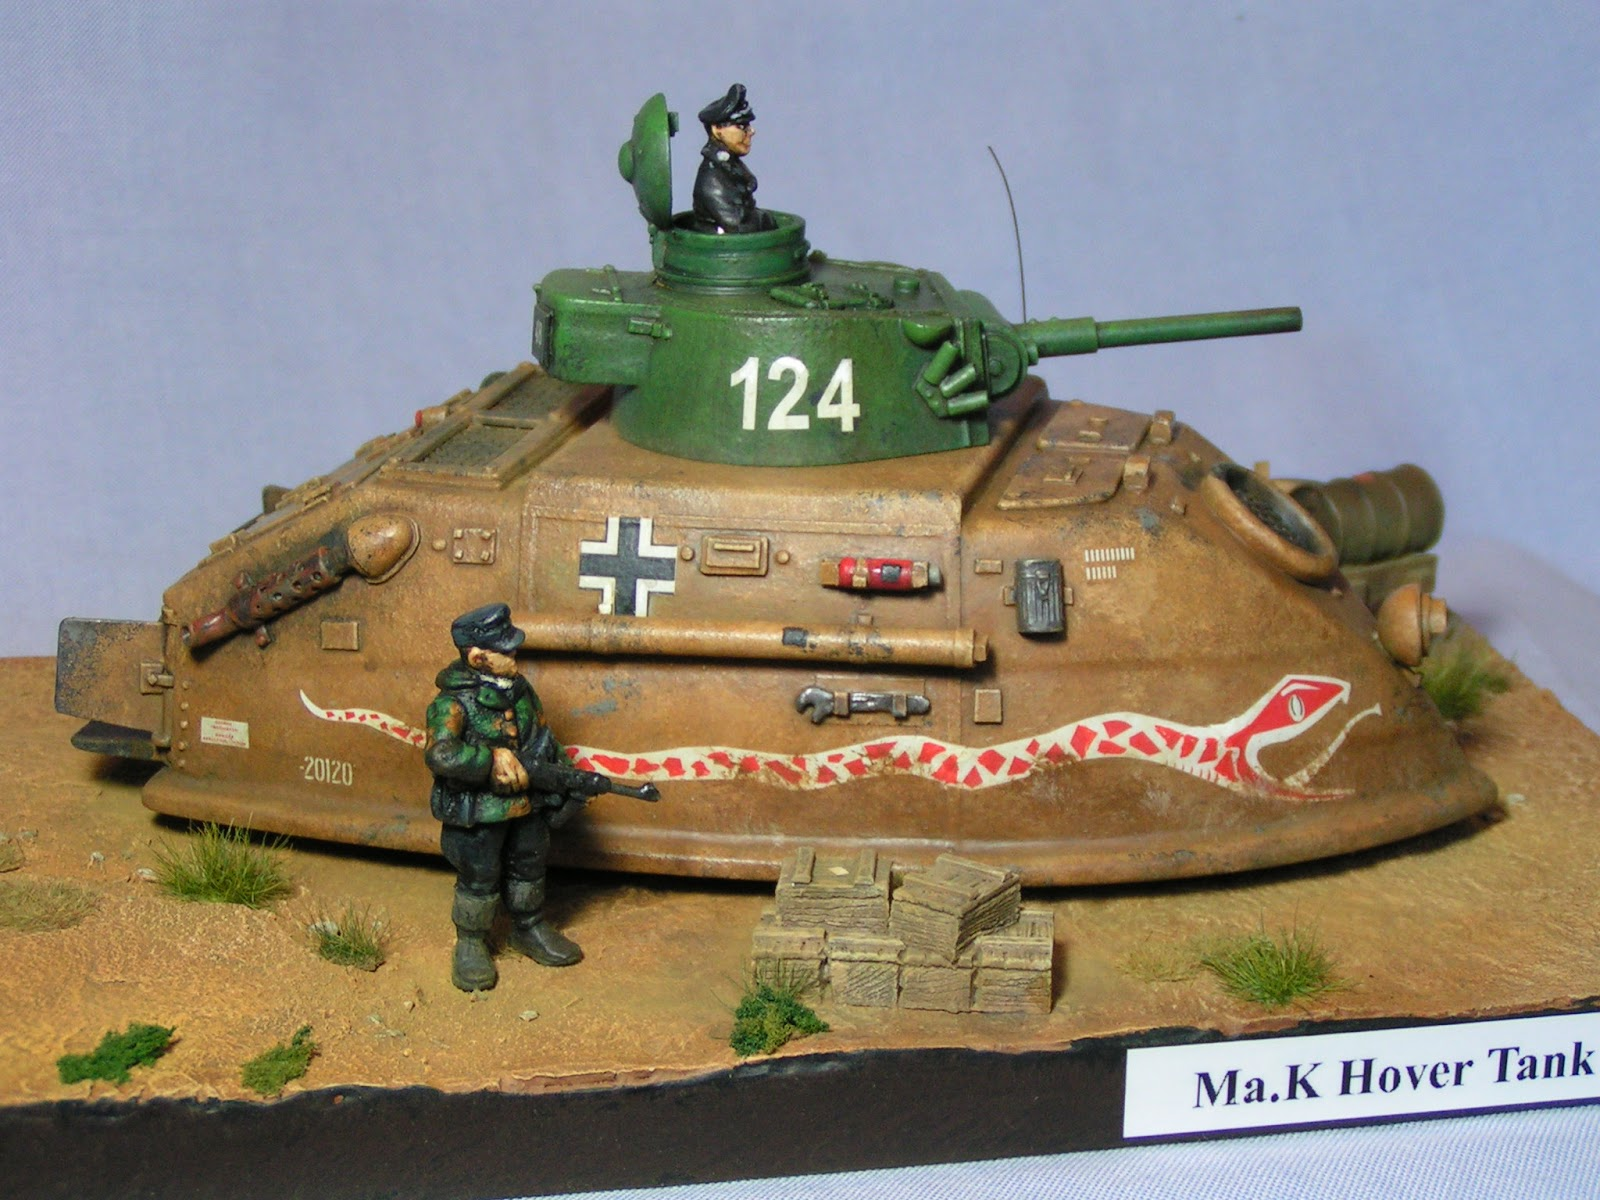 Dampf's modelling page: Ma K Hover Tank Ju87s - The Viper